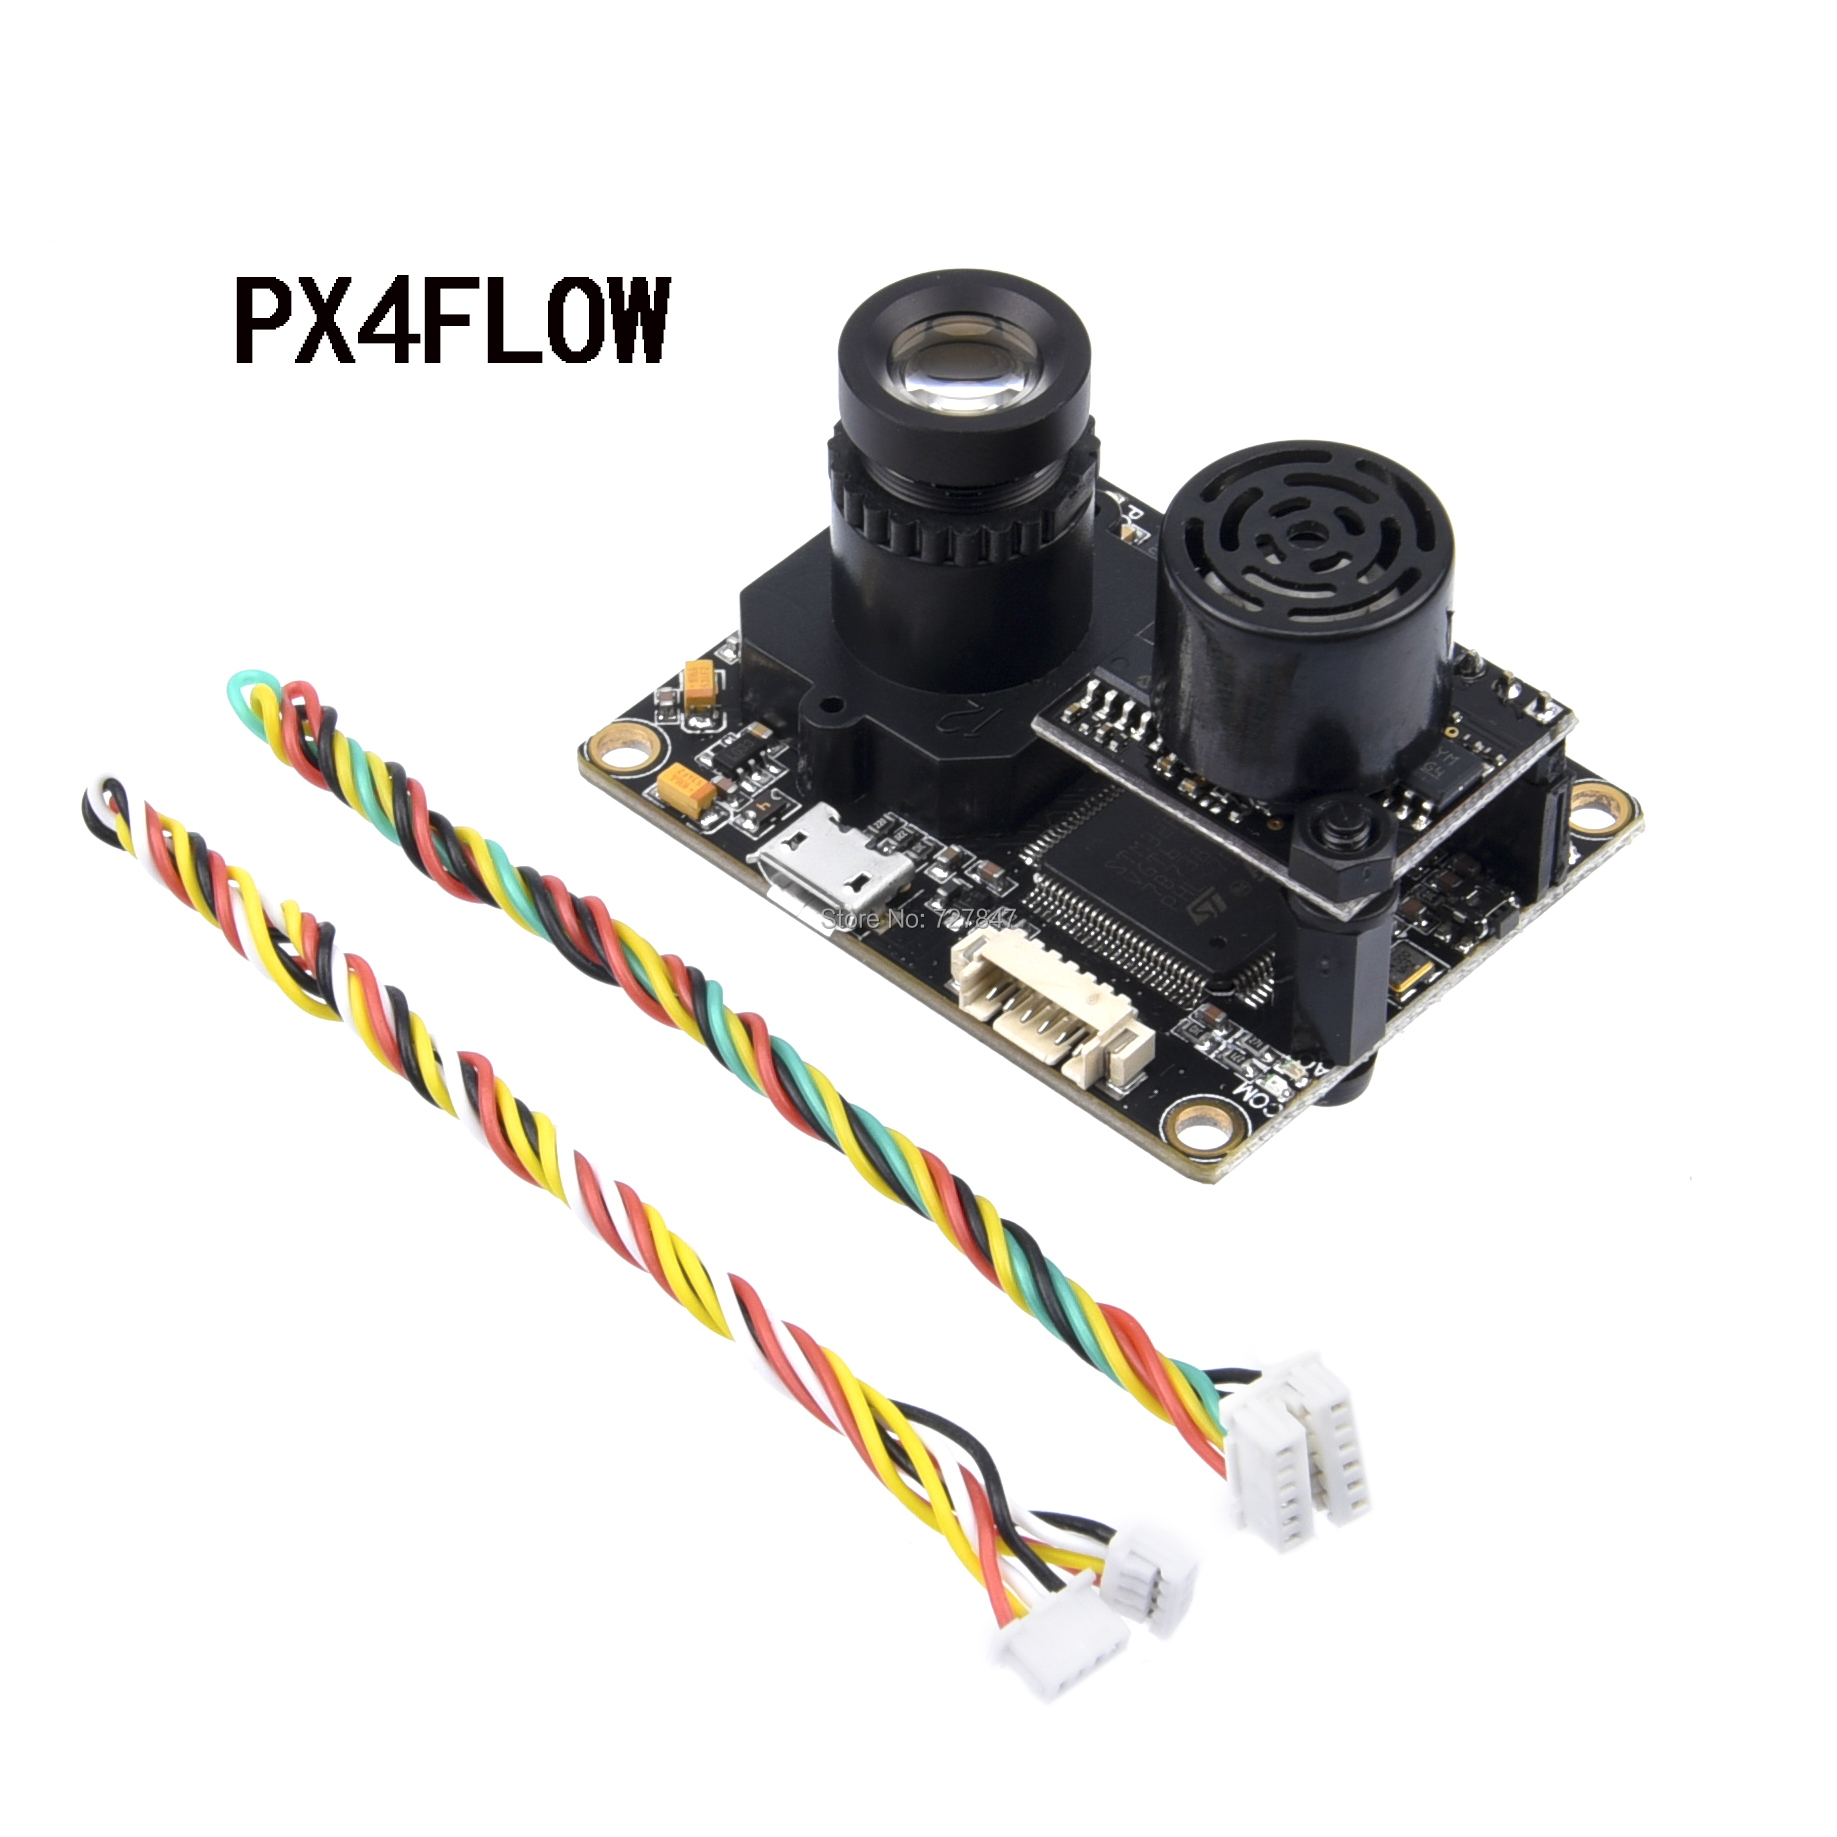 PX4FLOW V1.3.1 PIX Optical Flow Sensor Smart Camera With MB1043 Ultrasonic Module Sonar For PX4 PIX Pixhawk Flight Control